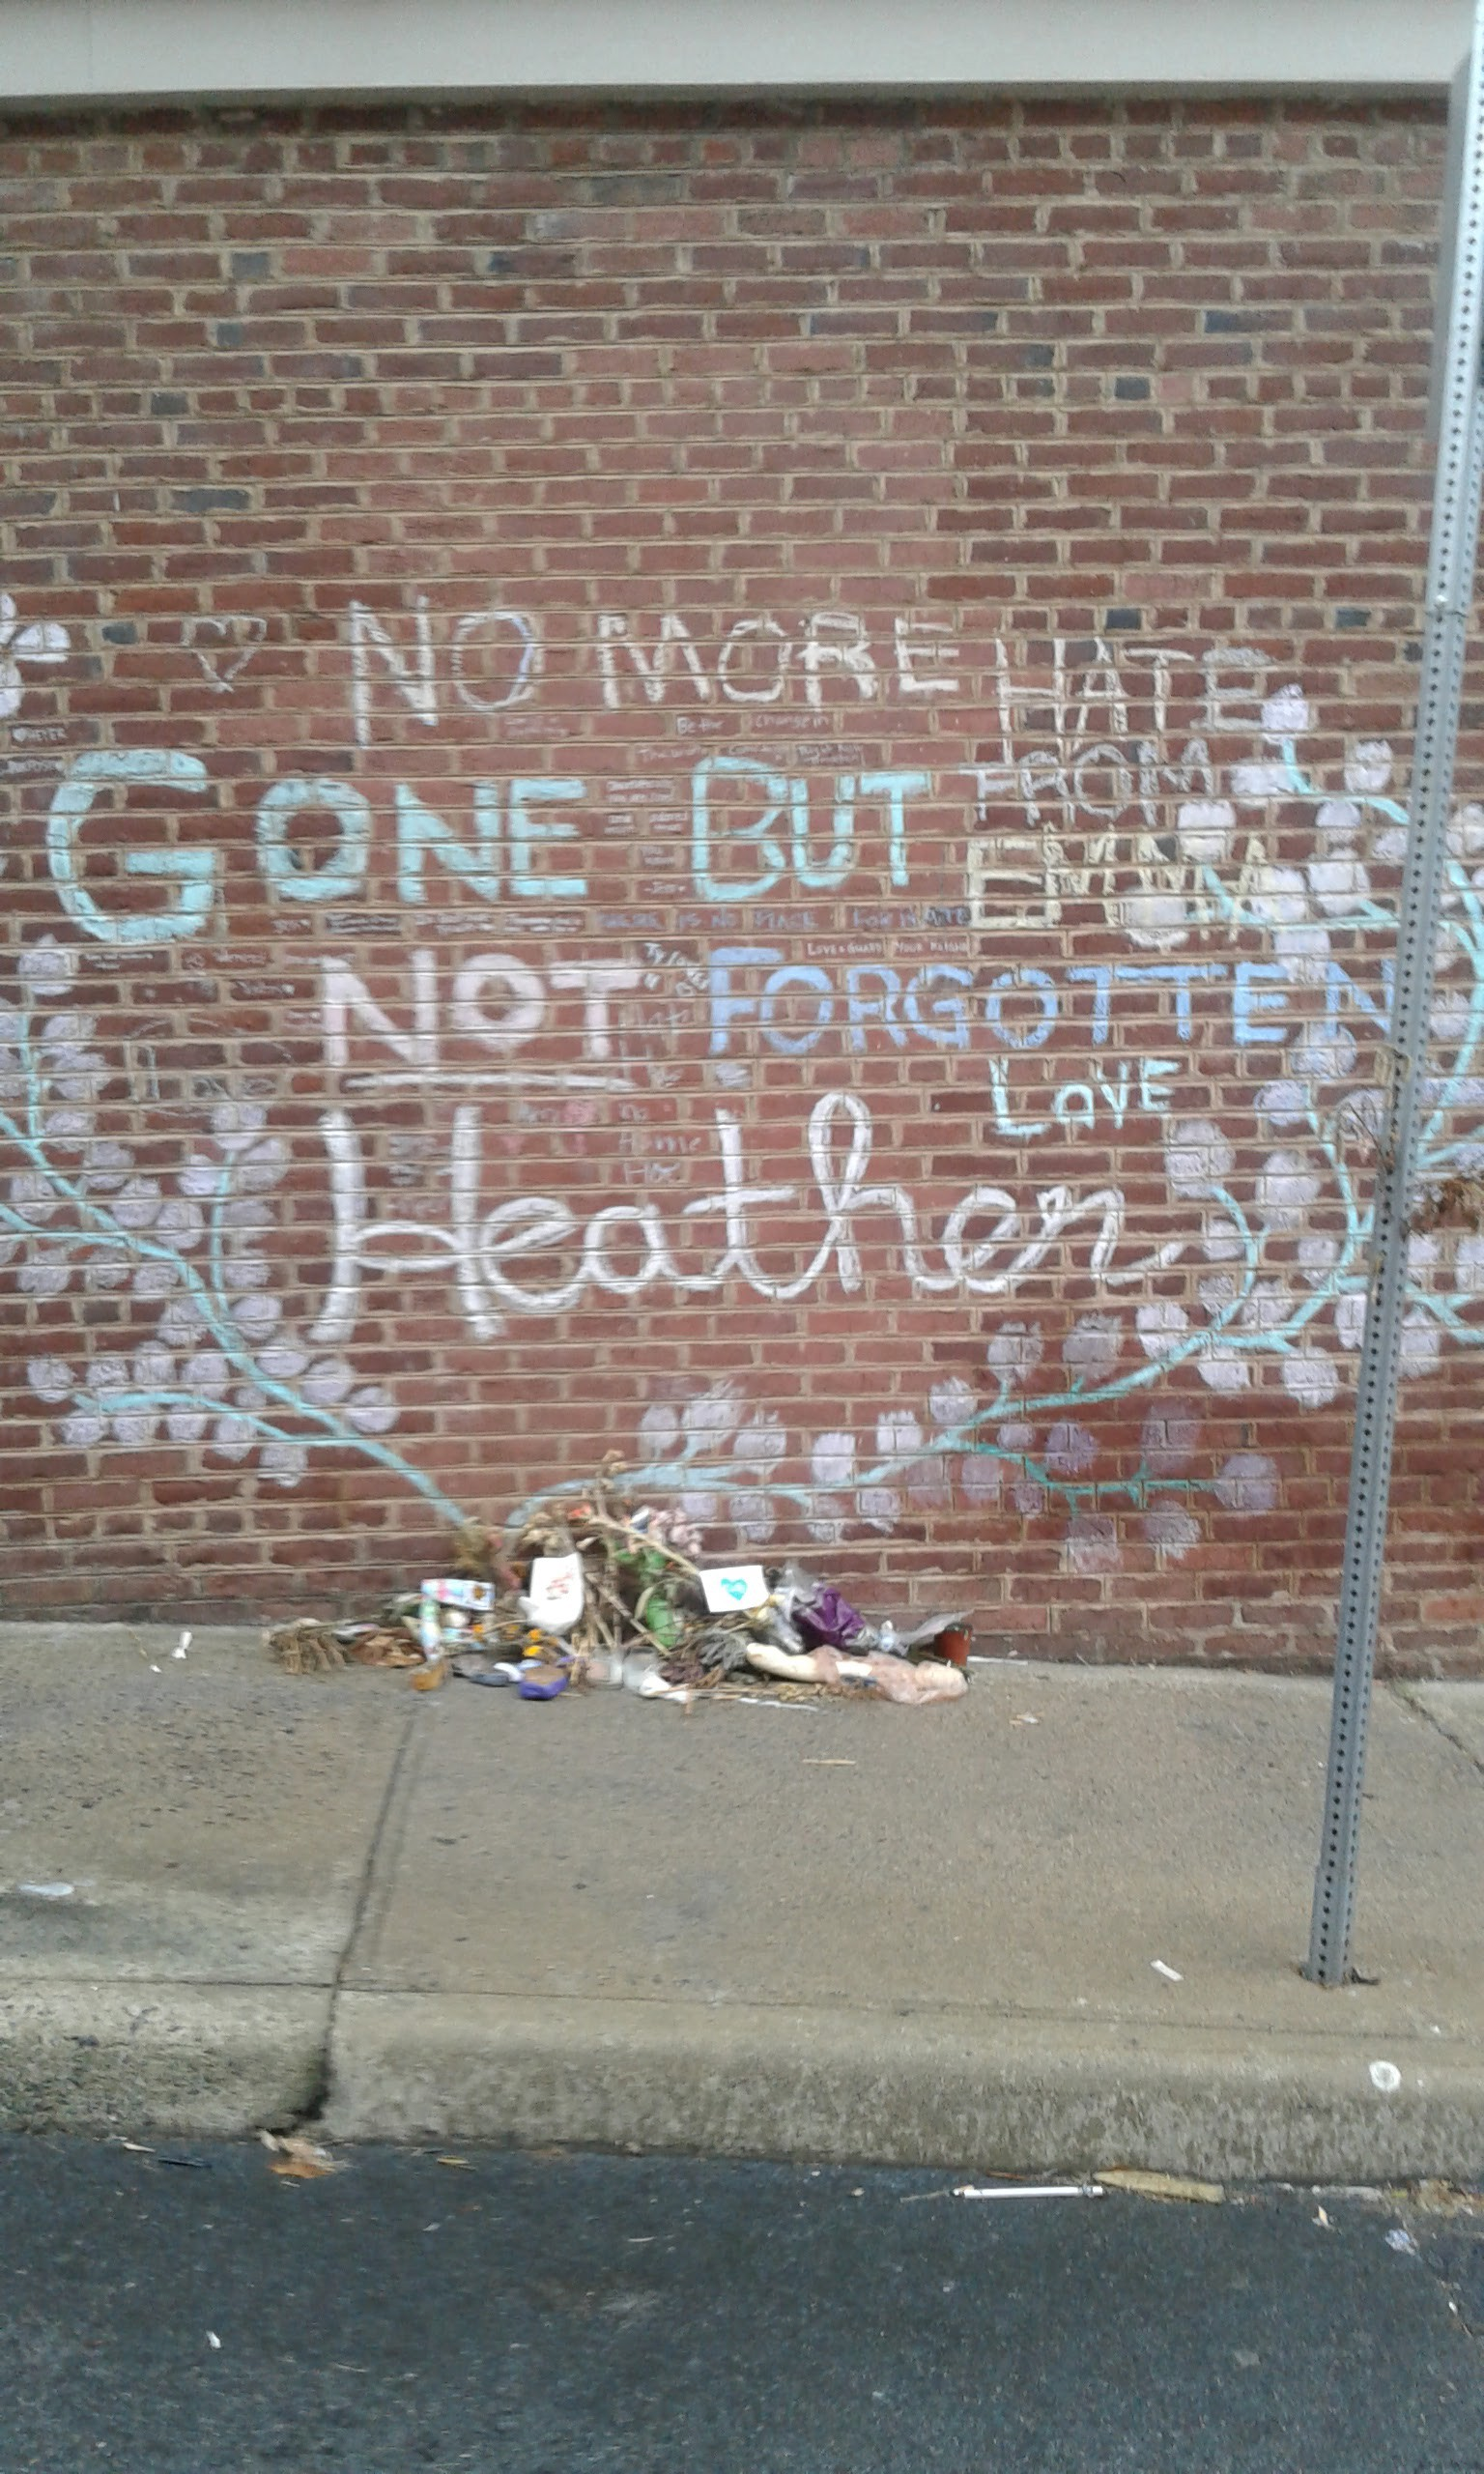 The memorial for Heather Heyer of flowers and signs at the site of her death.